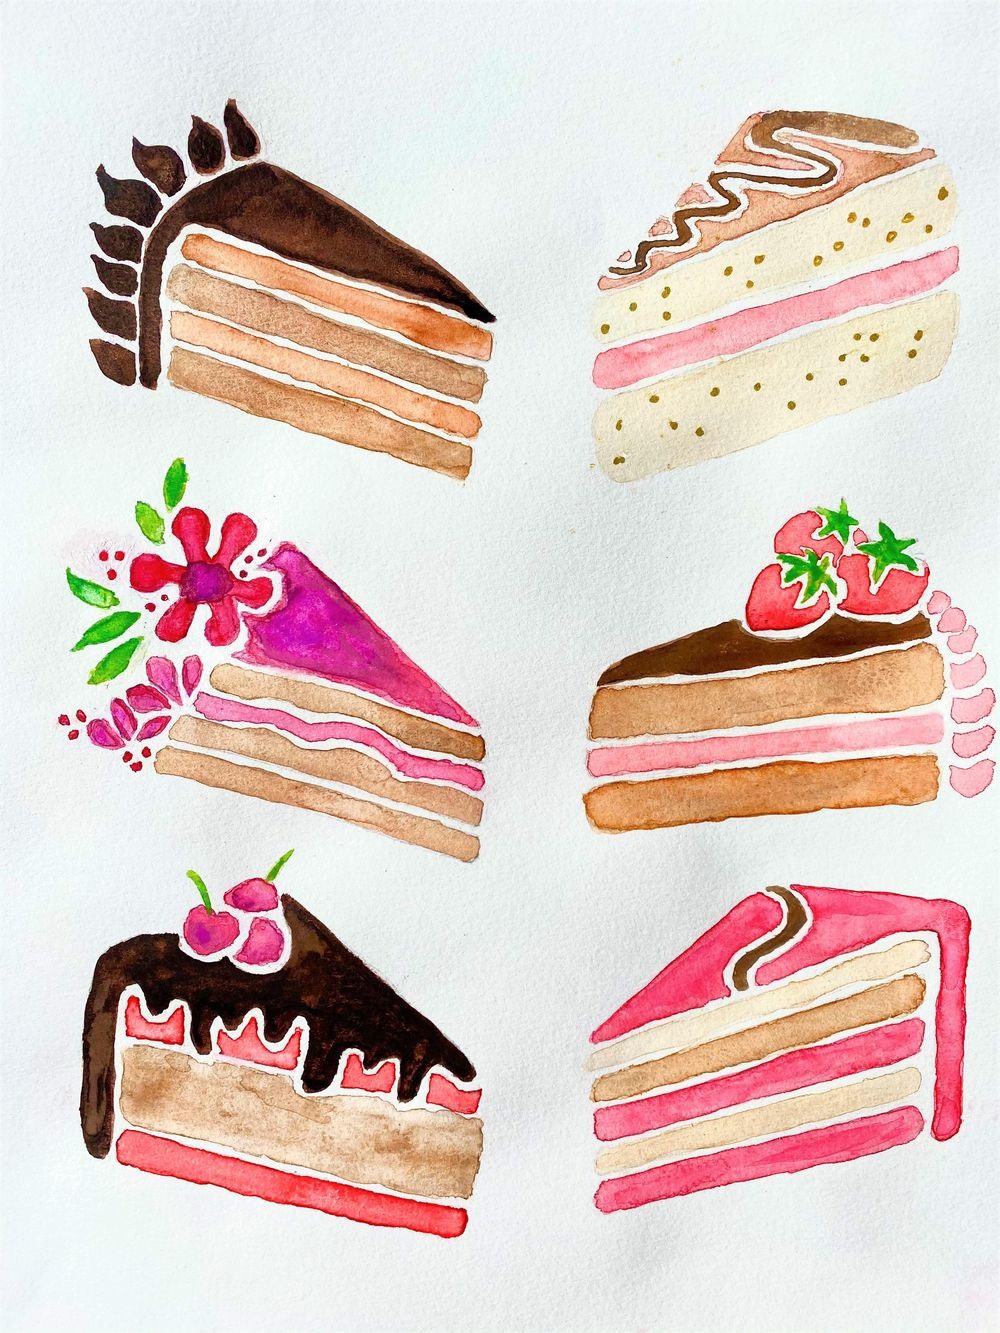 Tasty cakes! - image 1 - student project